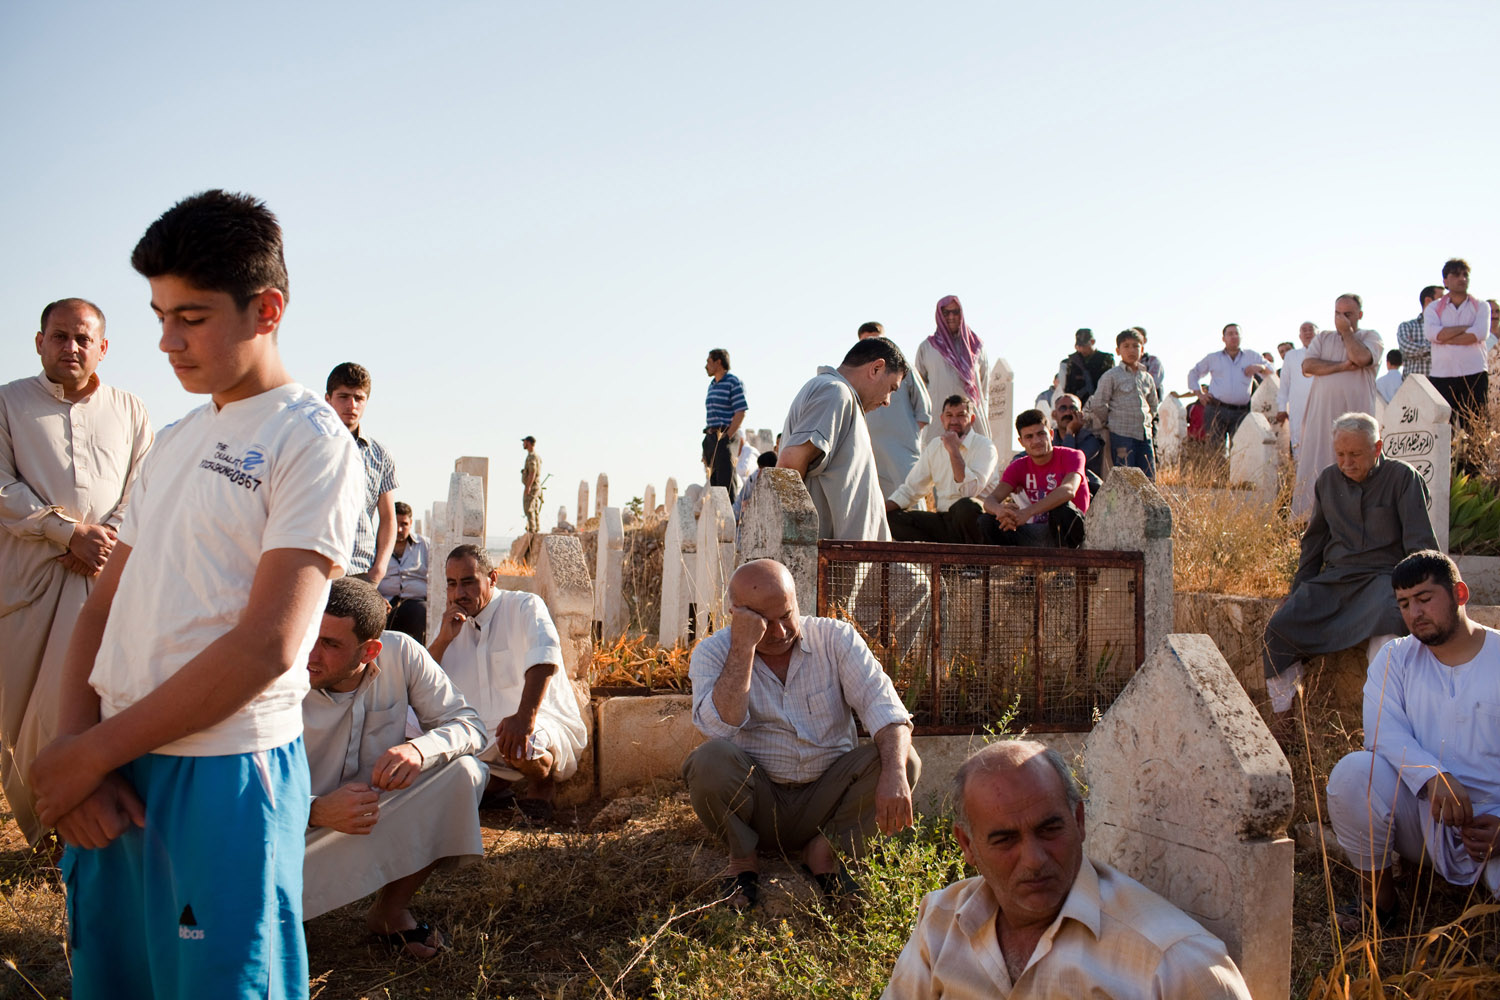 Men gather at a graveyard on the outskirts of Anadan, Syria, on June 8, 2012 to bury Fawaz Omar Abdullah, 30, a civilian who was shot and killed by a Syrian Army sniper the day before as he was walking near a checkpoint in the village.